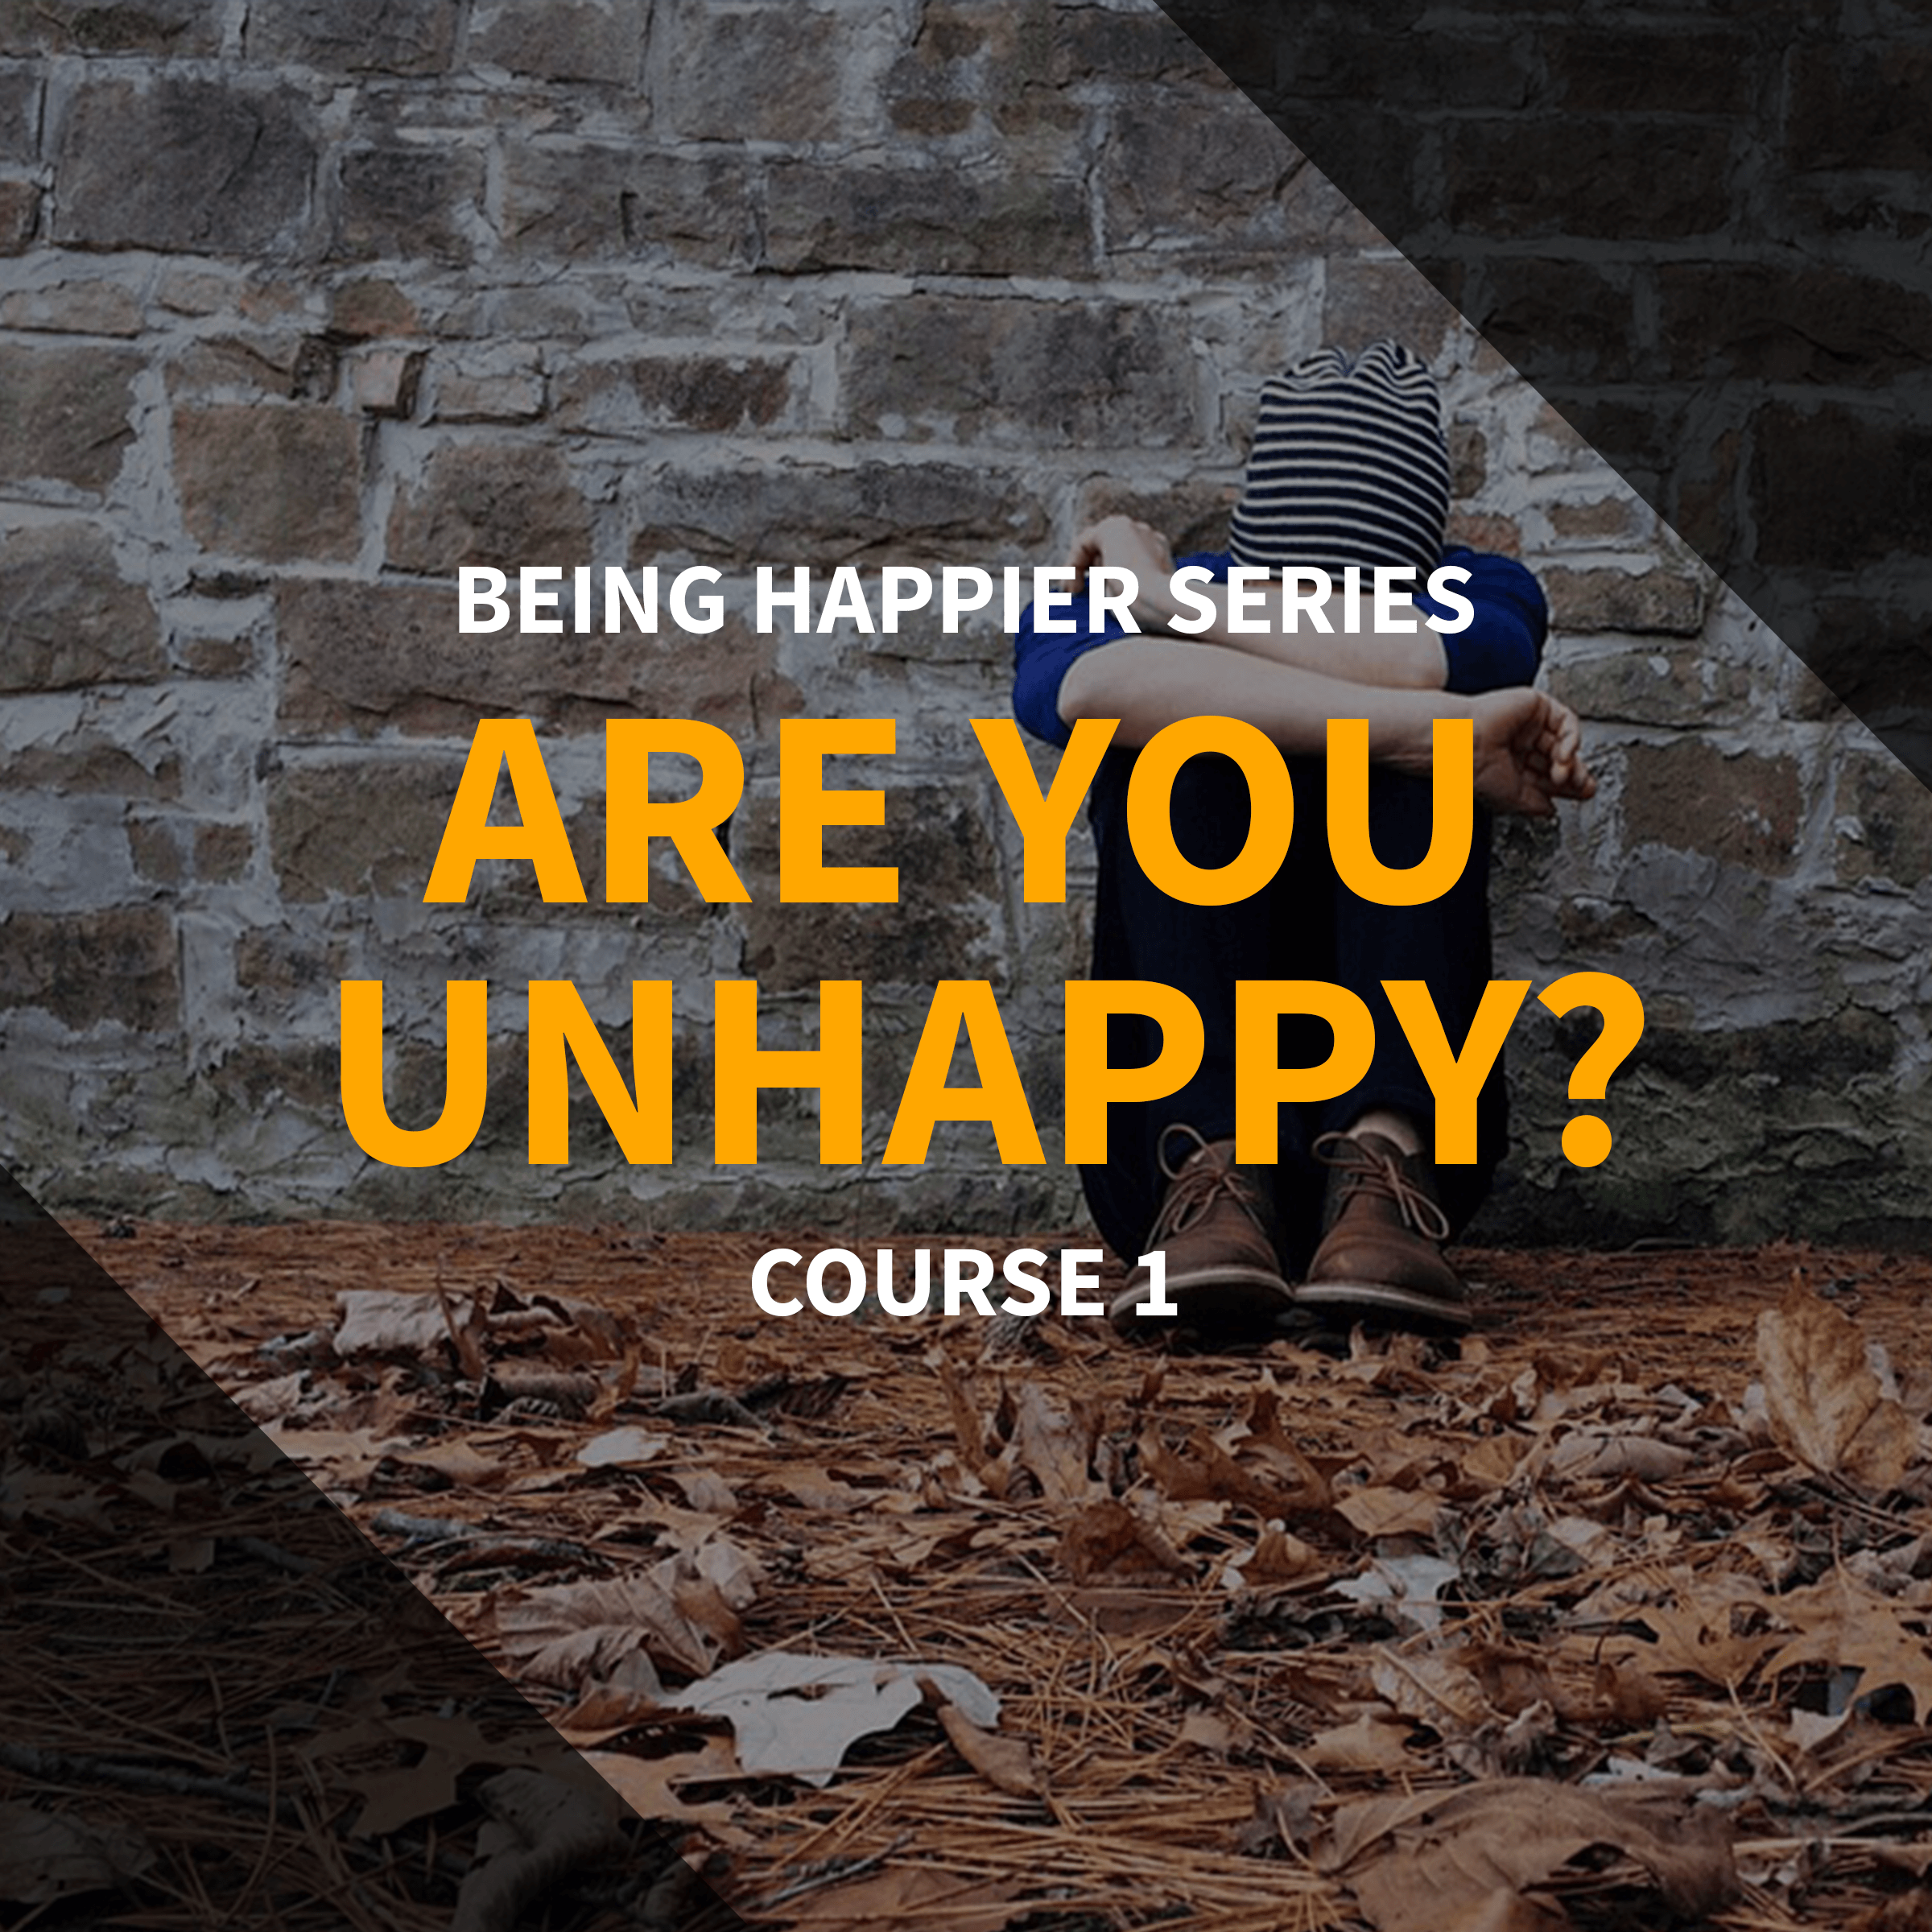 FHLC-Course-BeingHappier-1